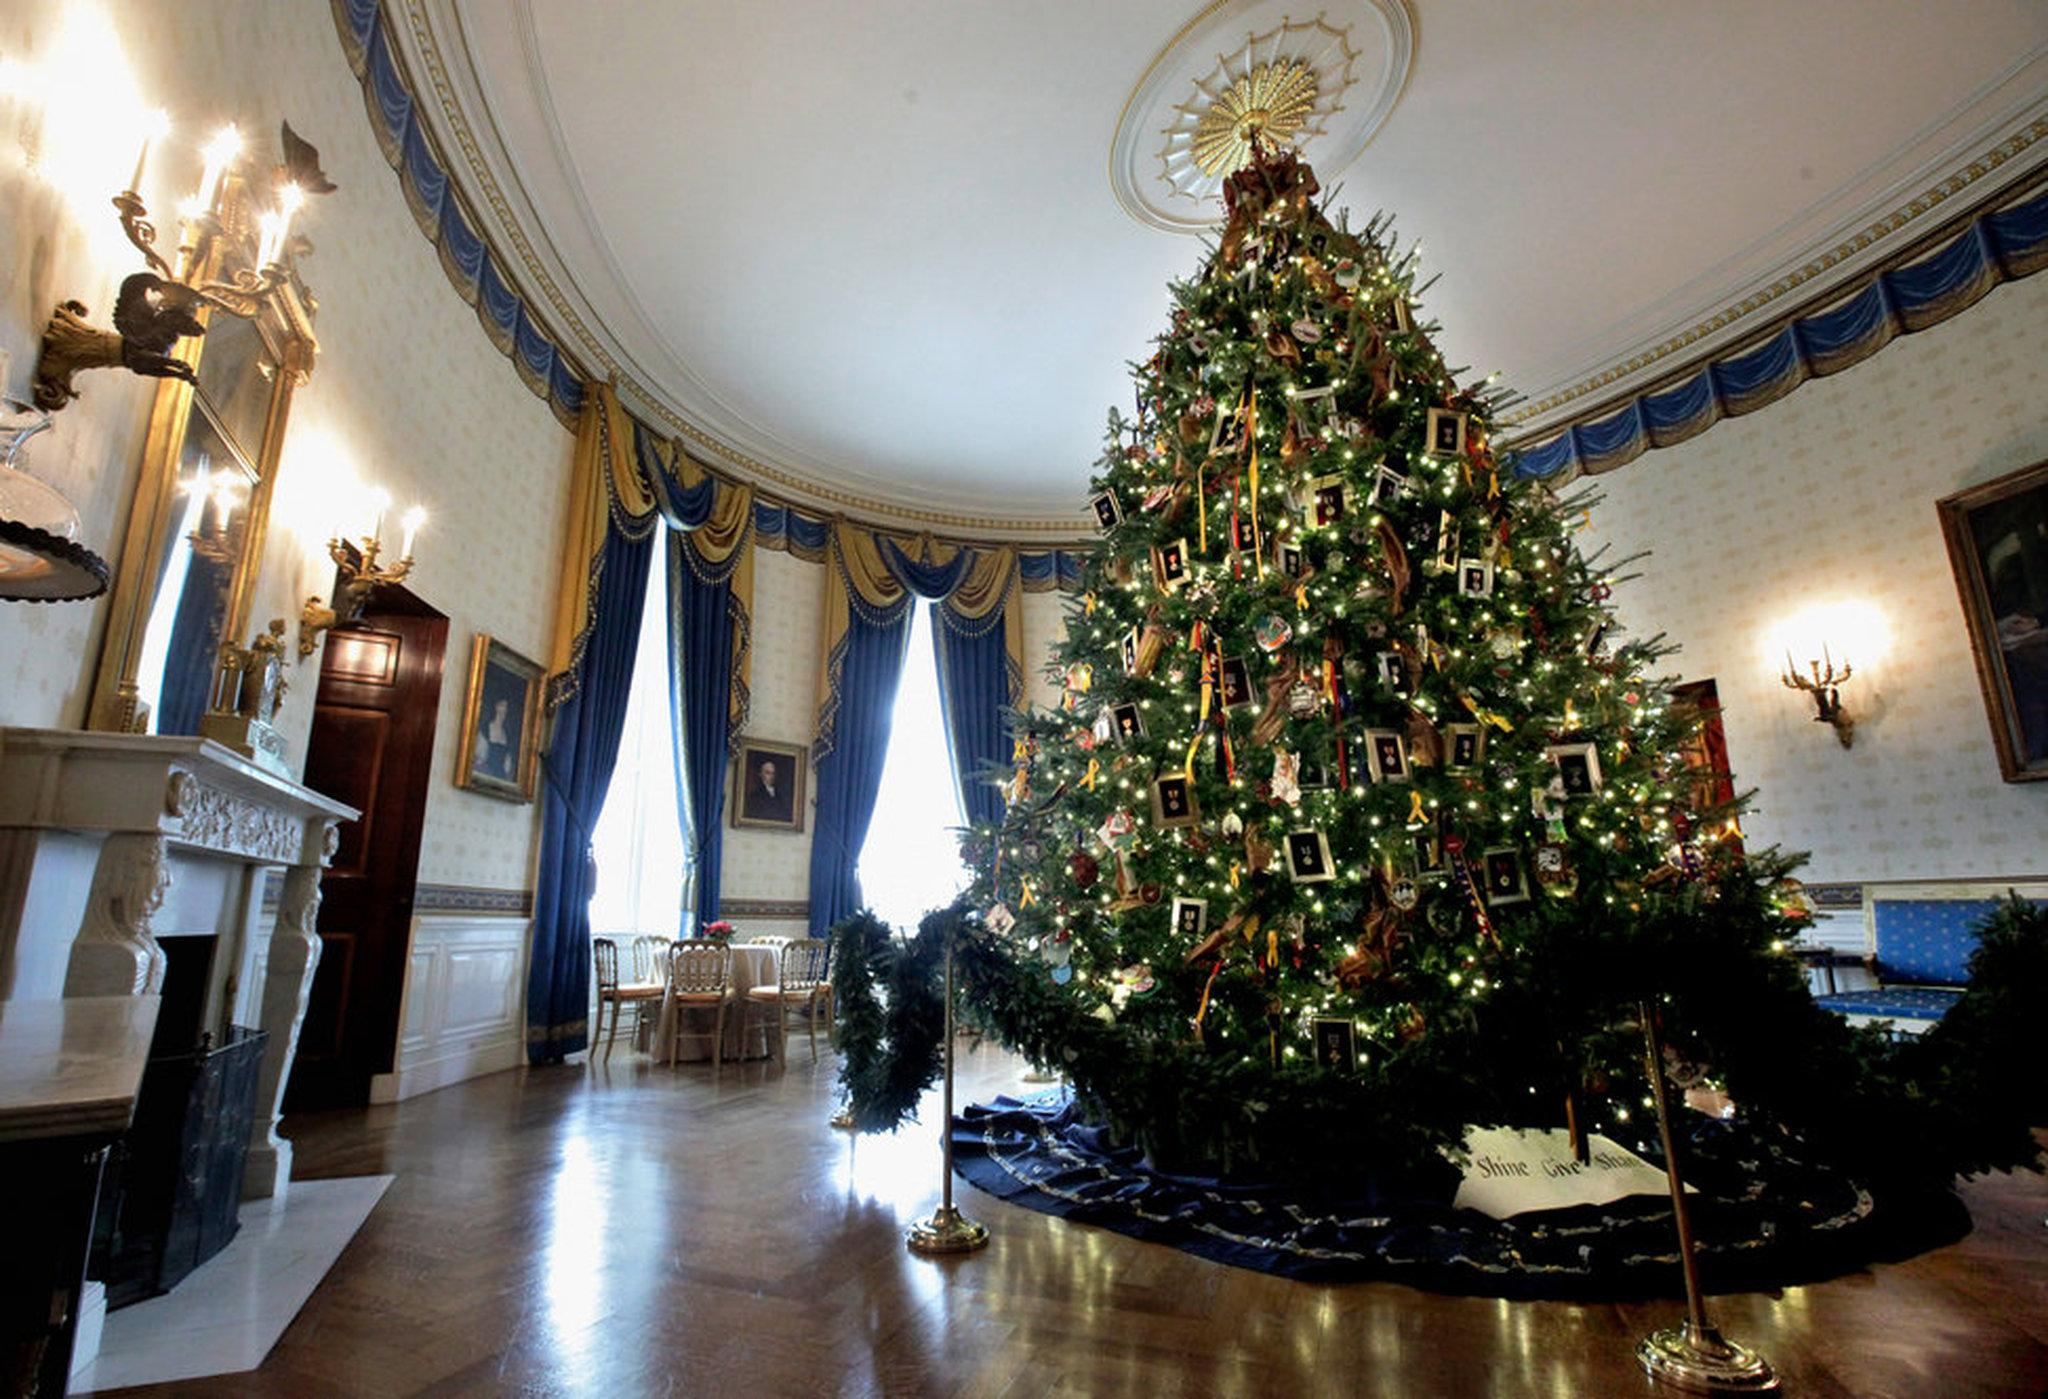 White house christmas ornaments by year - This Year The Official Tree Is An 18 1 2 Foot Balsam Fir In The Blue Room Decorated With Medals And Cards Made By Military Children It Honors Blue Star